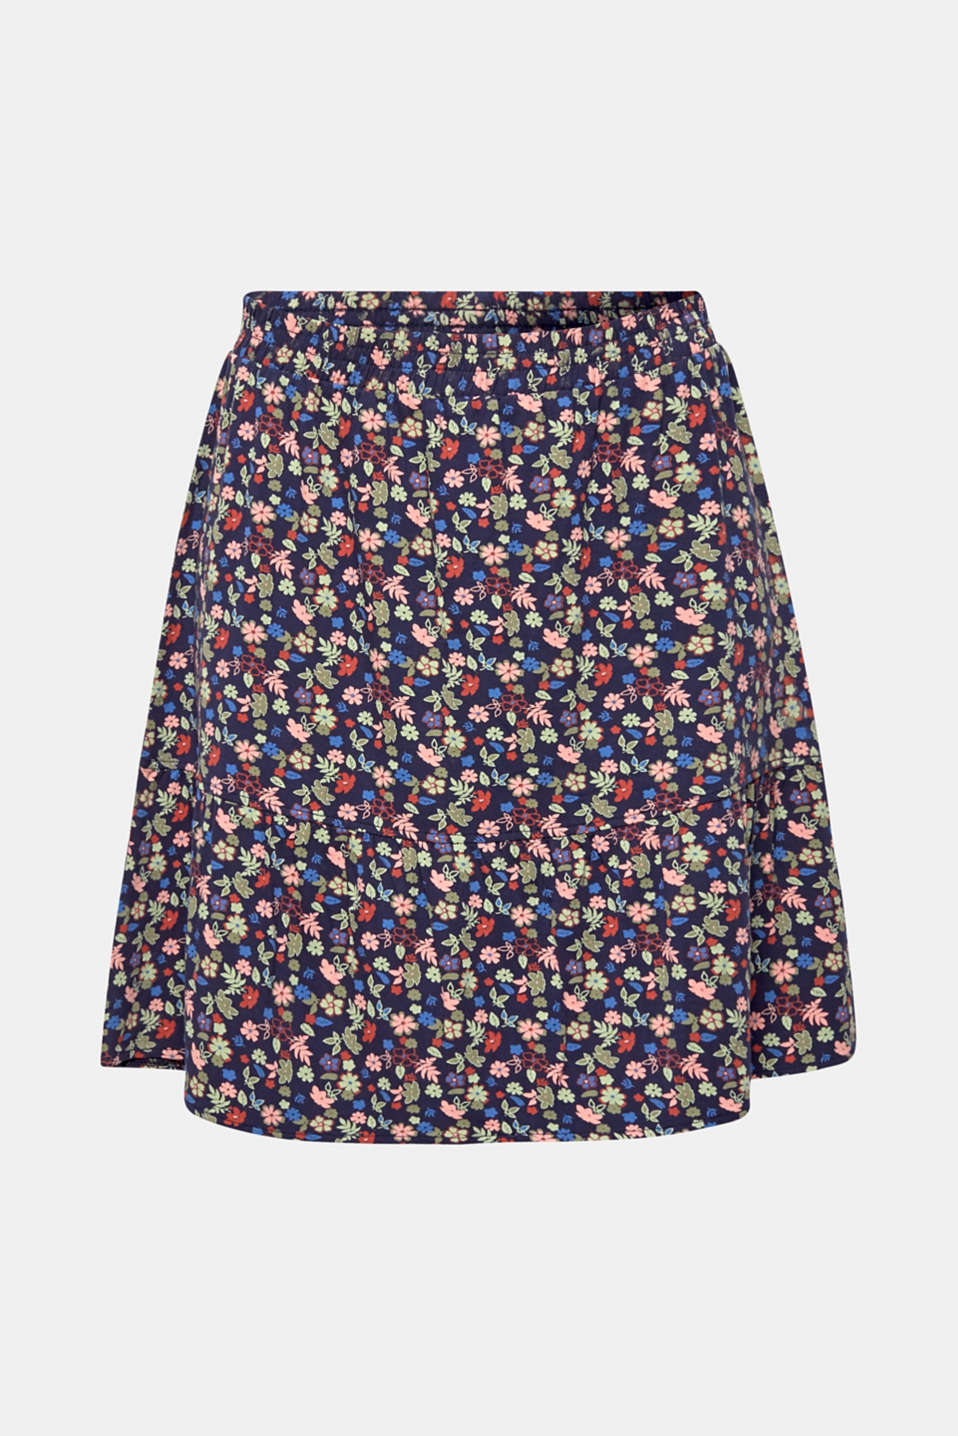 Skirts knitted, NAVY 2, detail image number 7